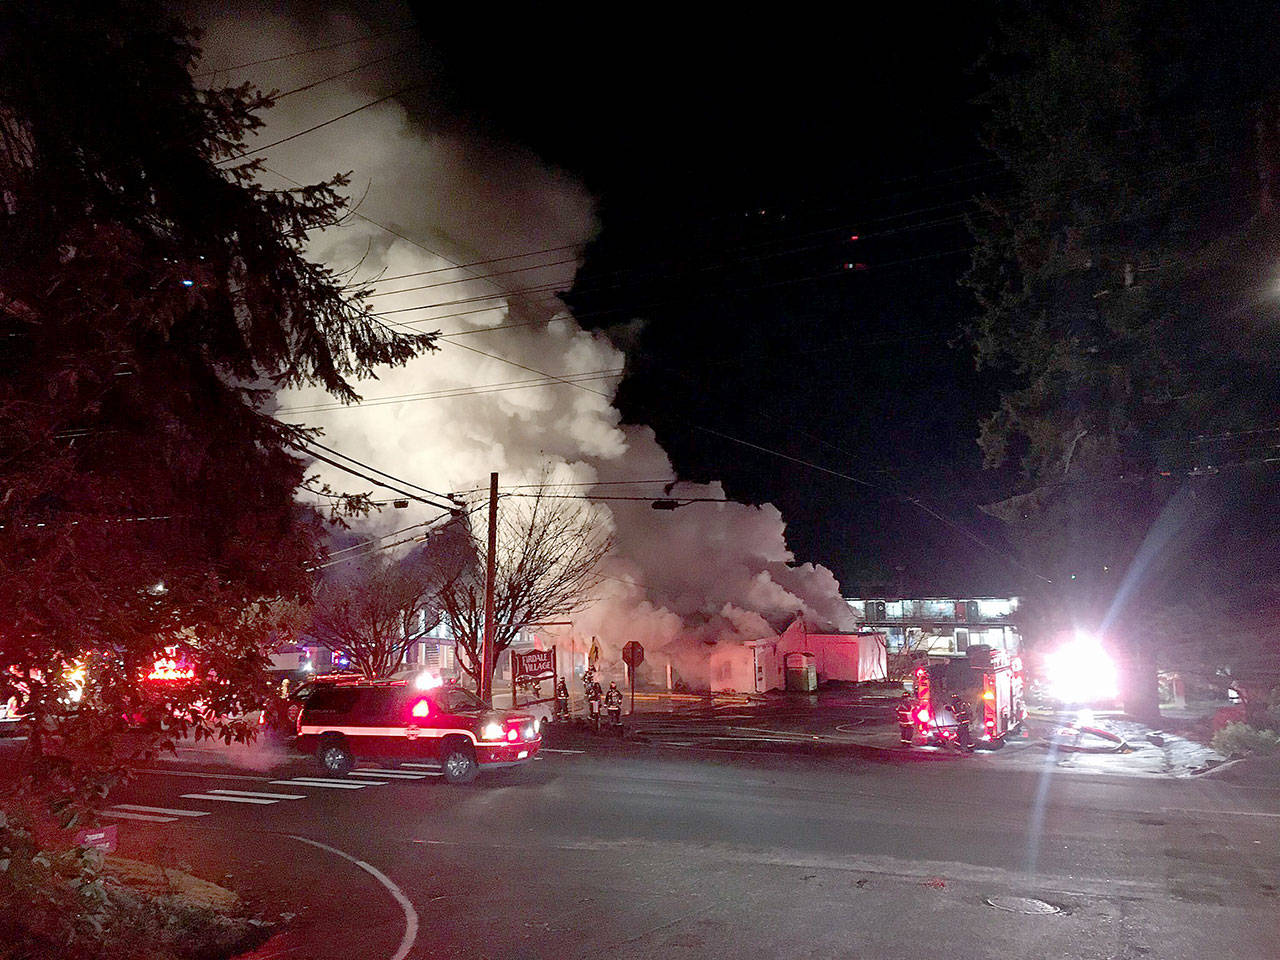 The Firdale Market in Edmonds burns Wednesday morning. (Edmonds Police Department)